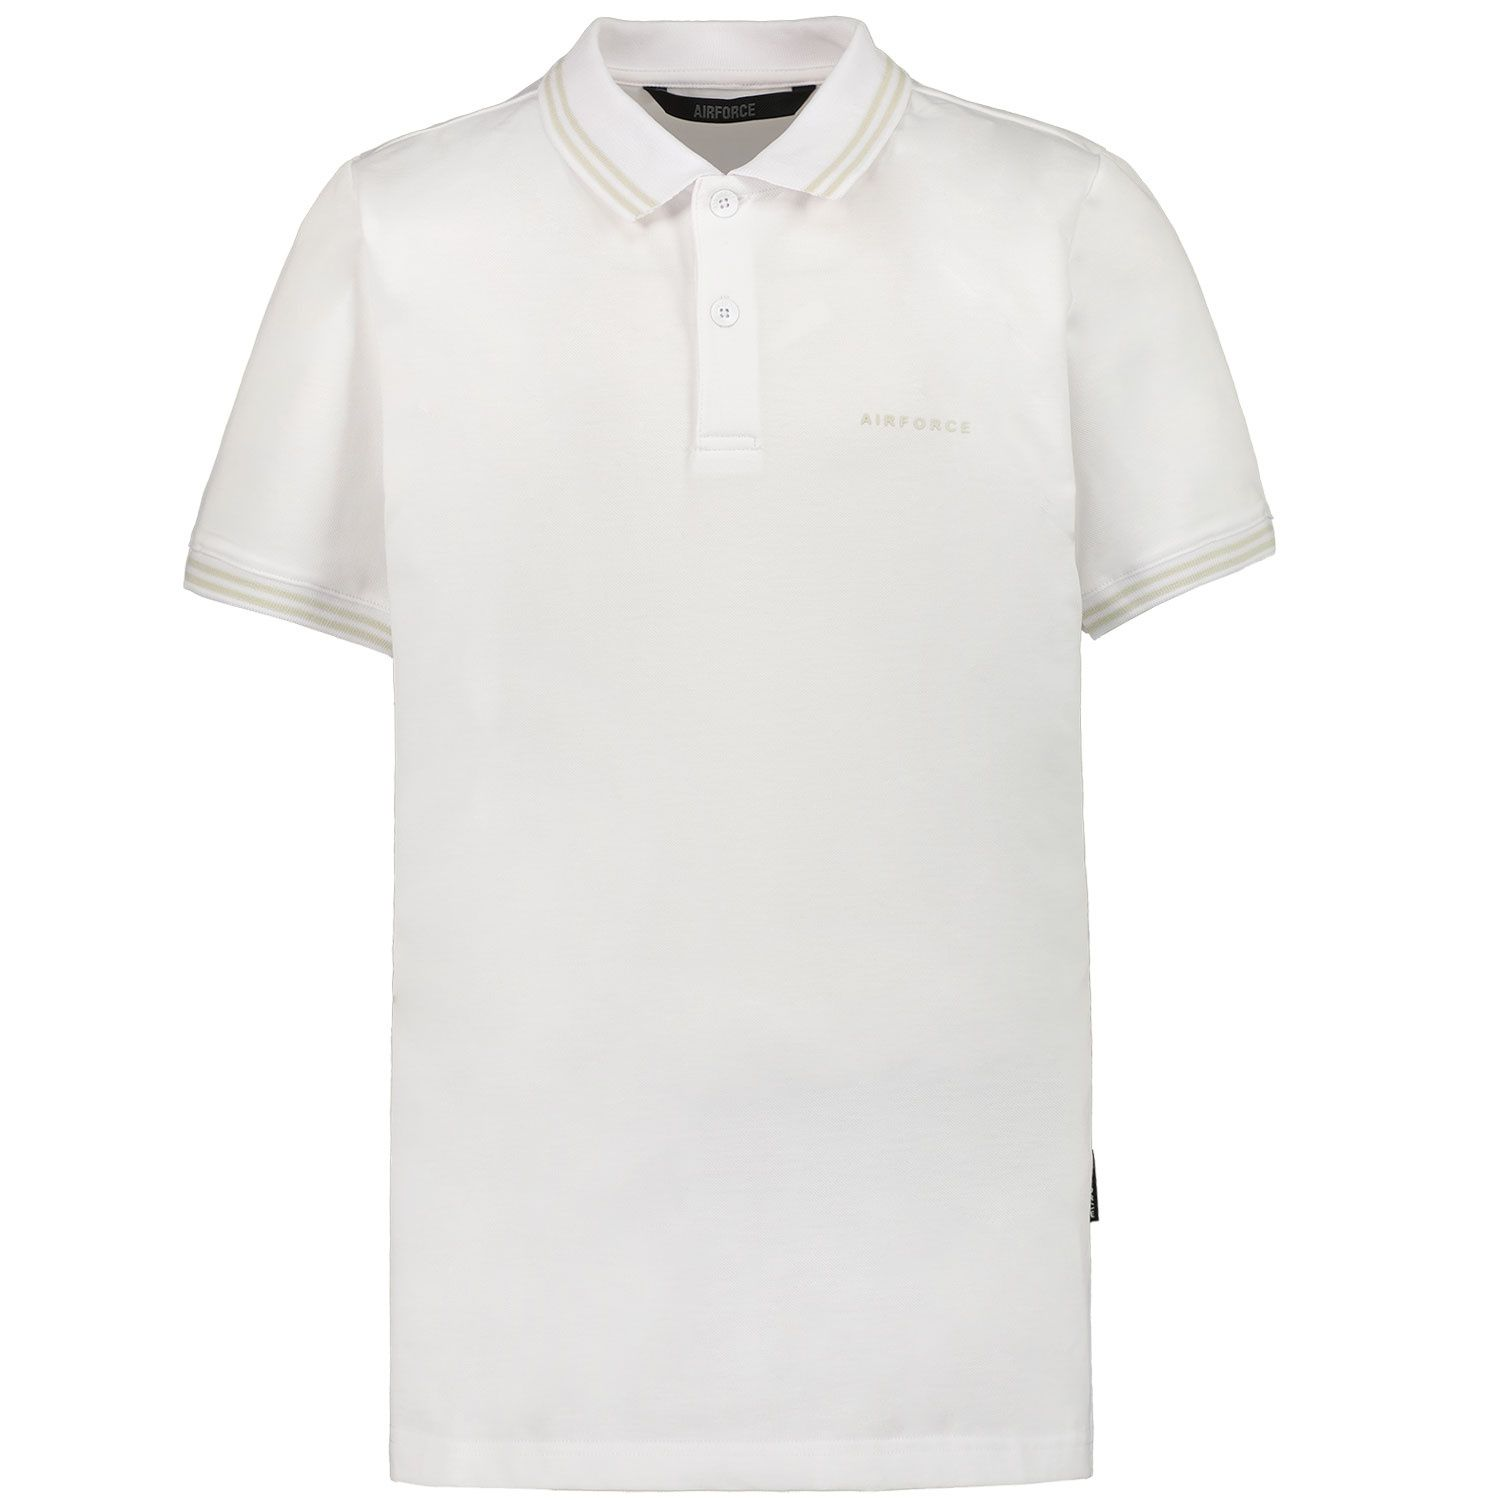 Picture of Airforce HRB0655 kids polo shirt white